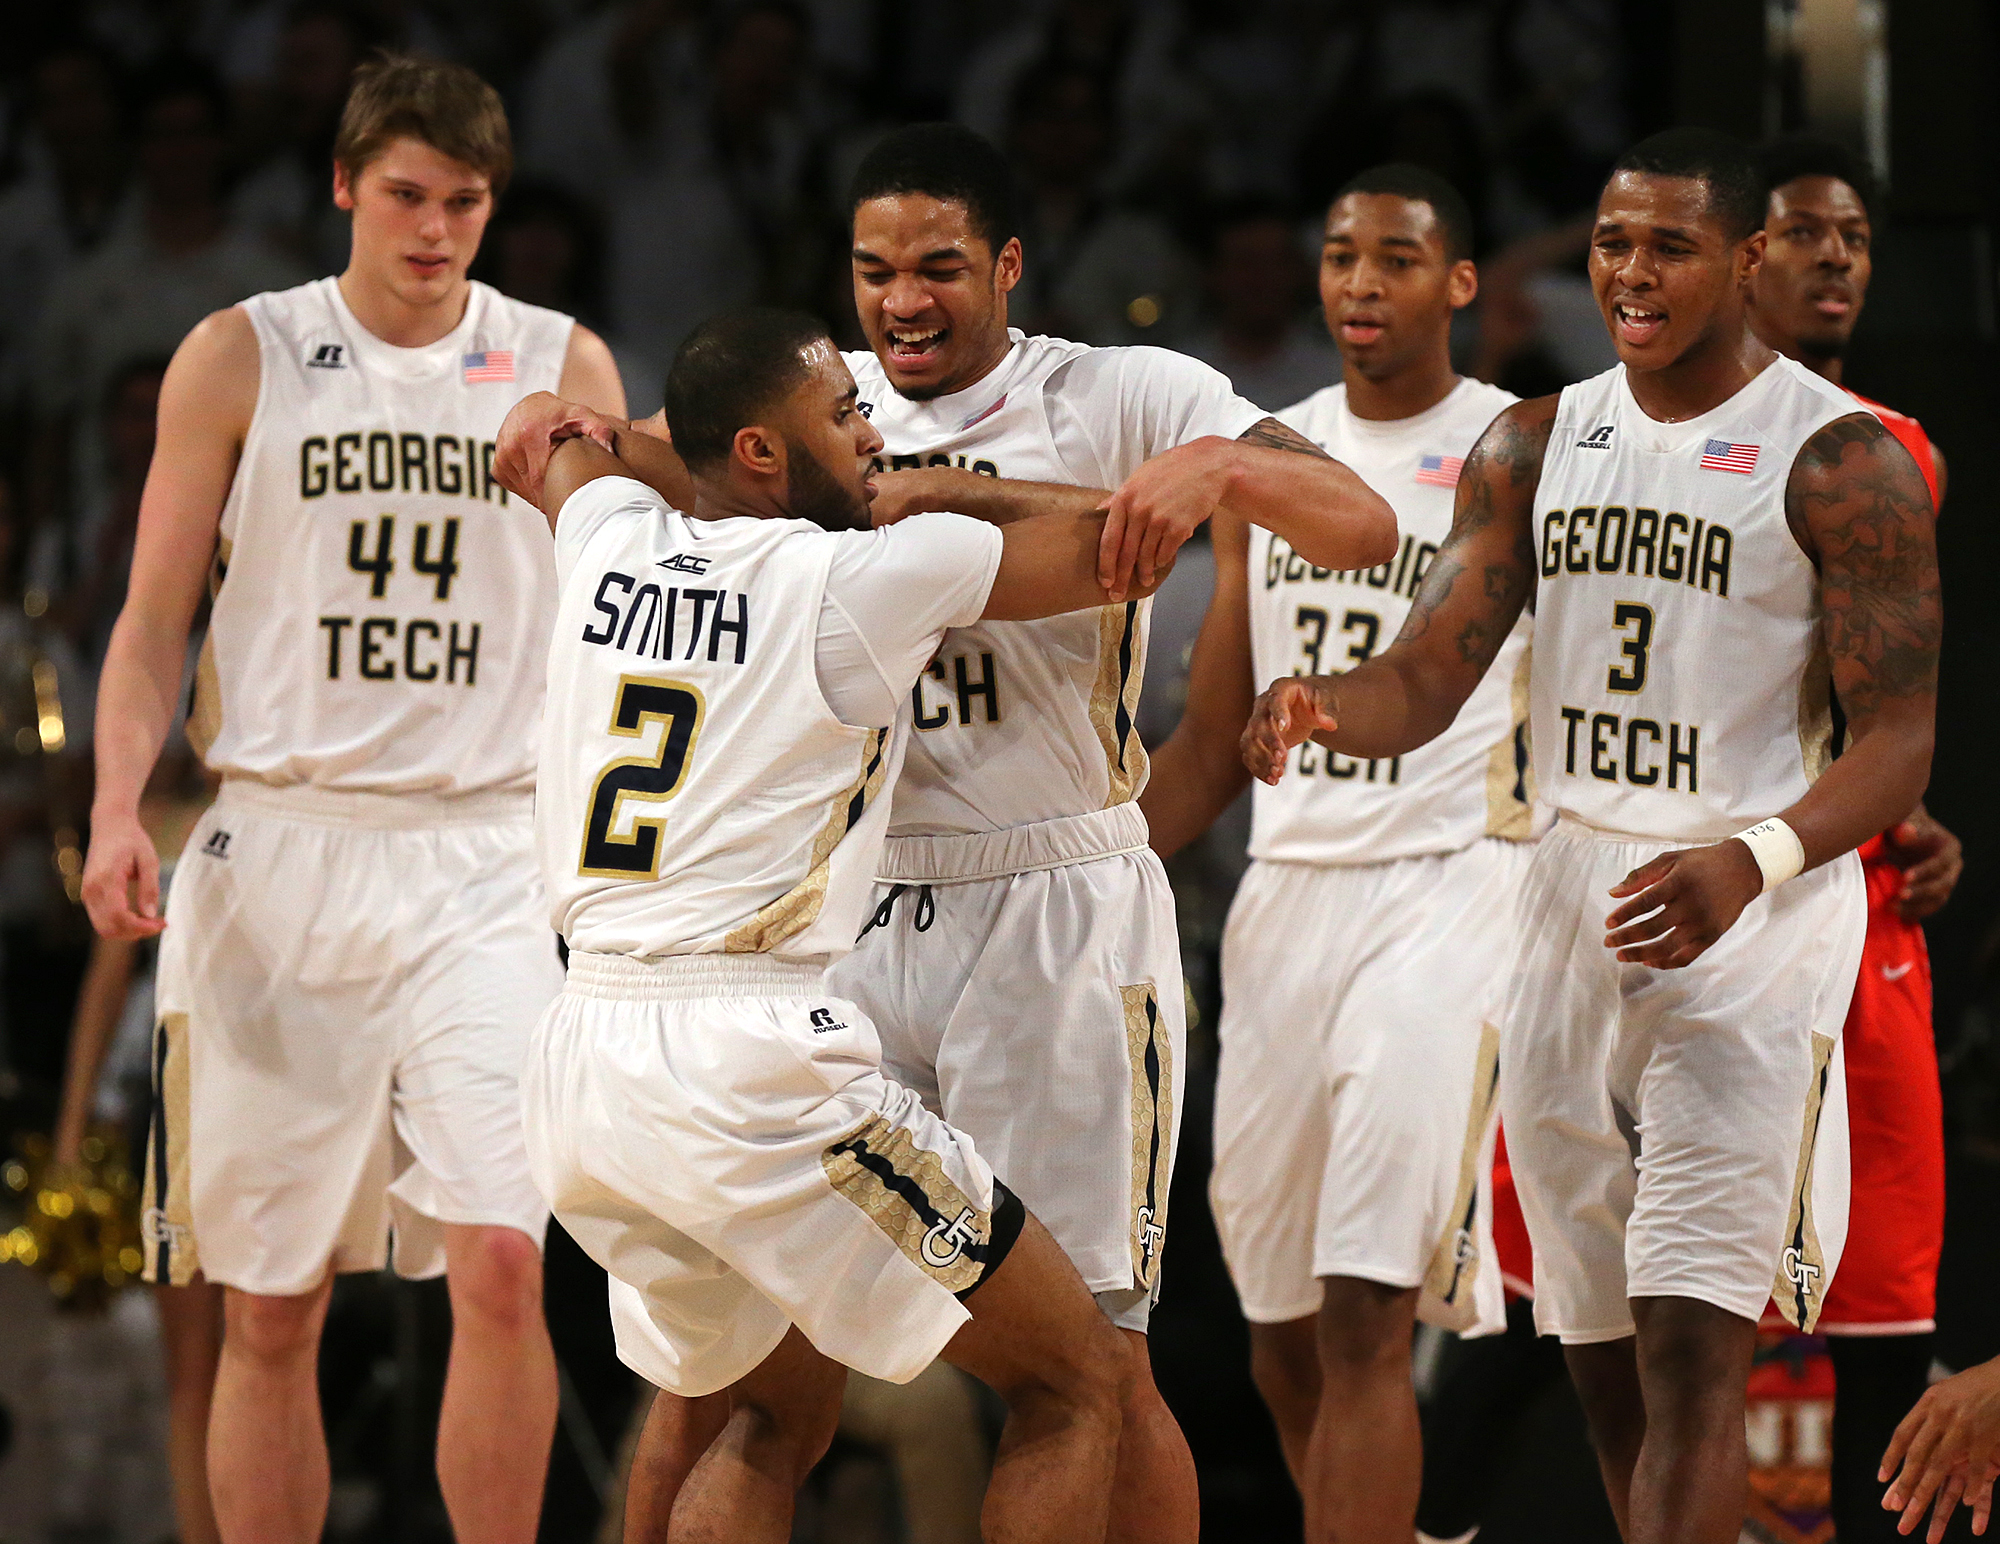 Georgia Tech guard Adam Smith is pulled up from the floor by Tadric Jackson after he hit a 2-pointer and was fouled during an NCAA college basketball game against Houston in the first round of the NIT on Wednesday, March 16, 2016, in Atlanta. (Curtis Comp